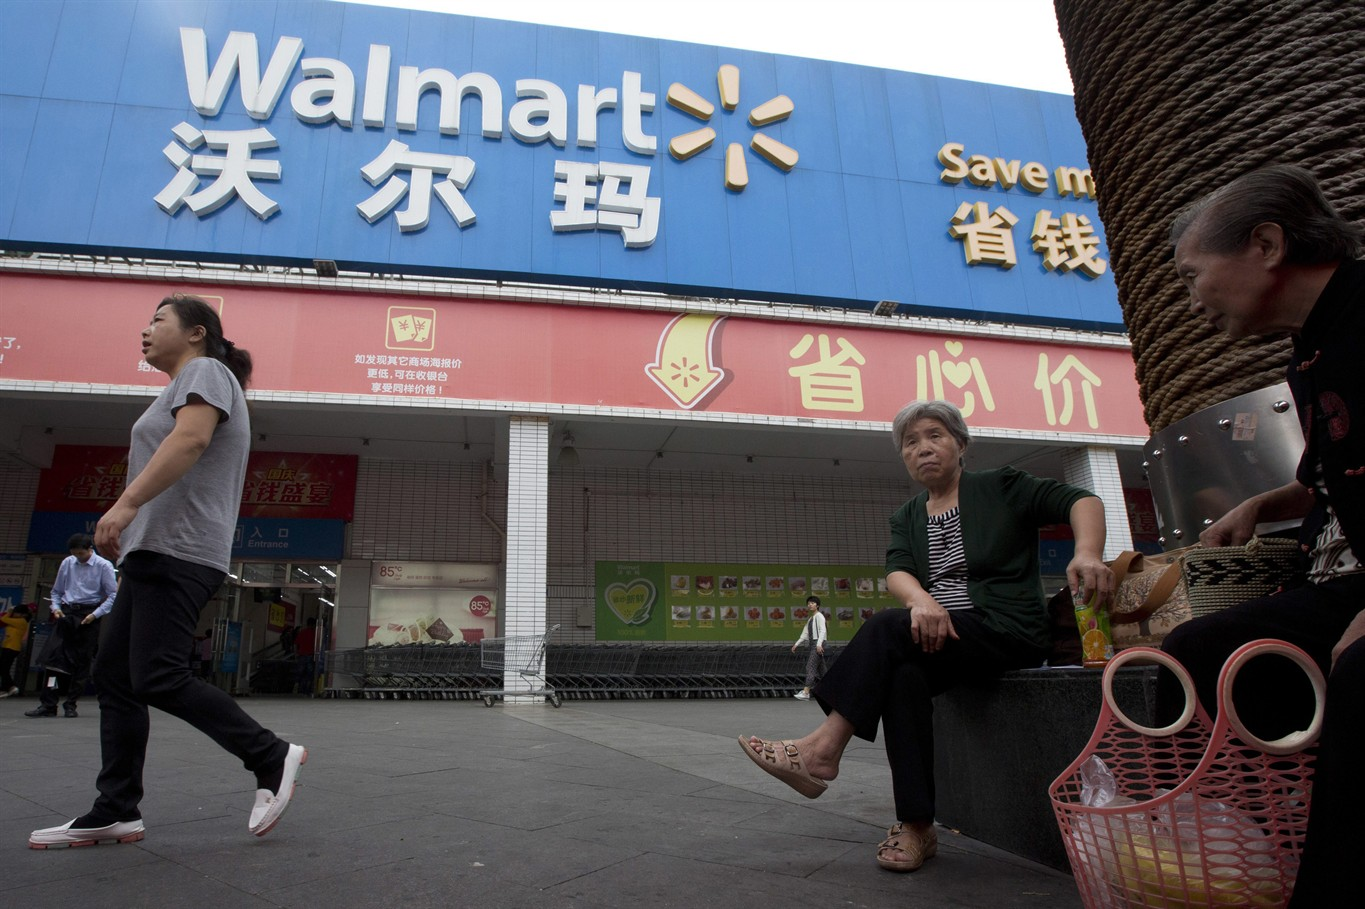 problems faced by wal mart in india Problems faced by wal-mart: problems faced by wal-mart external problems late entry overlook competitors destroy small businesses joint venture & nationalism culture different house brand & price differentiate suppliers government regulations.